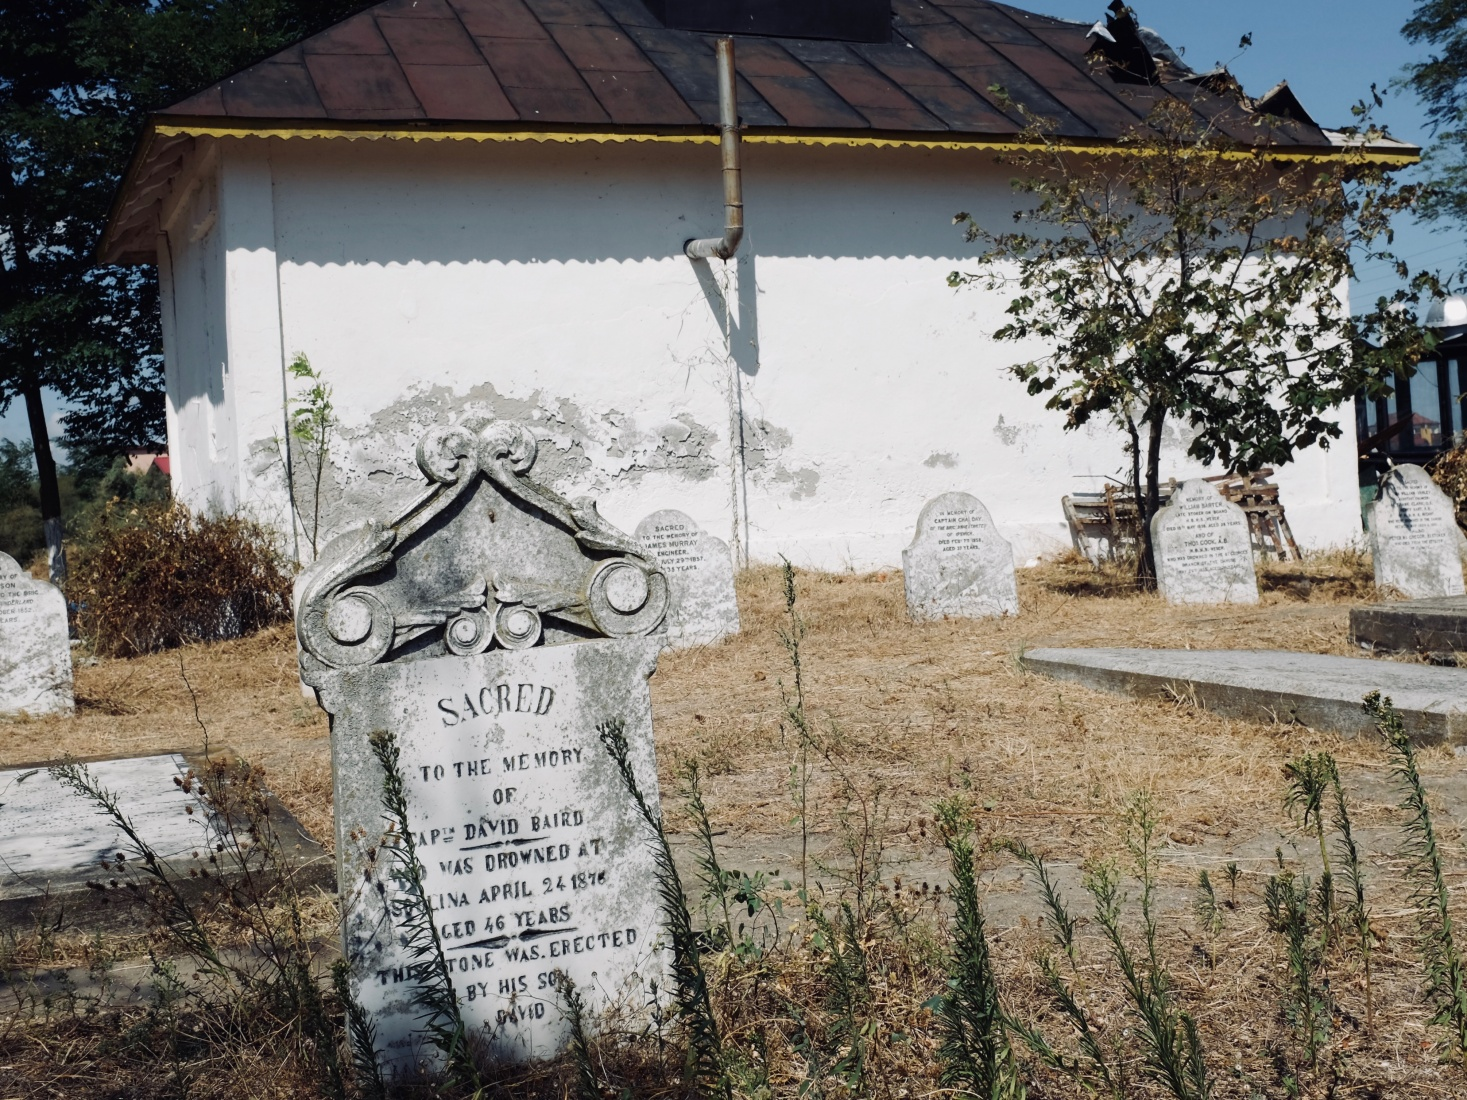 The tombstone of David Baird, a worker who died trying to open up the channels of the Danube to commericial boats near Sulina, Romania in the 19th century.